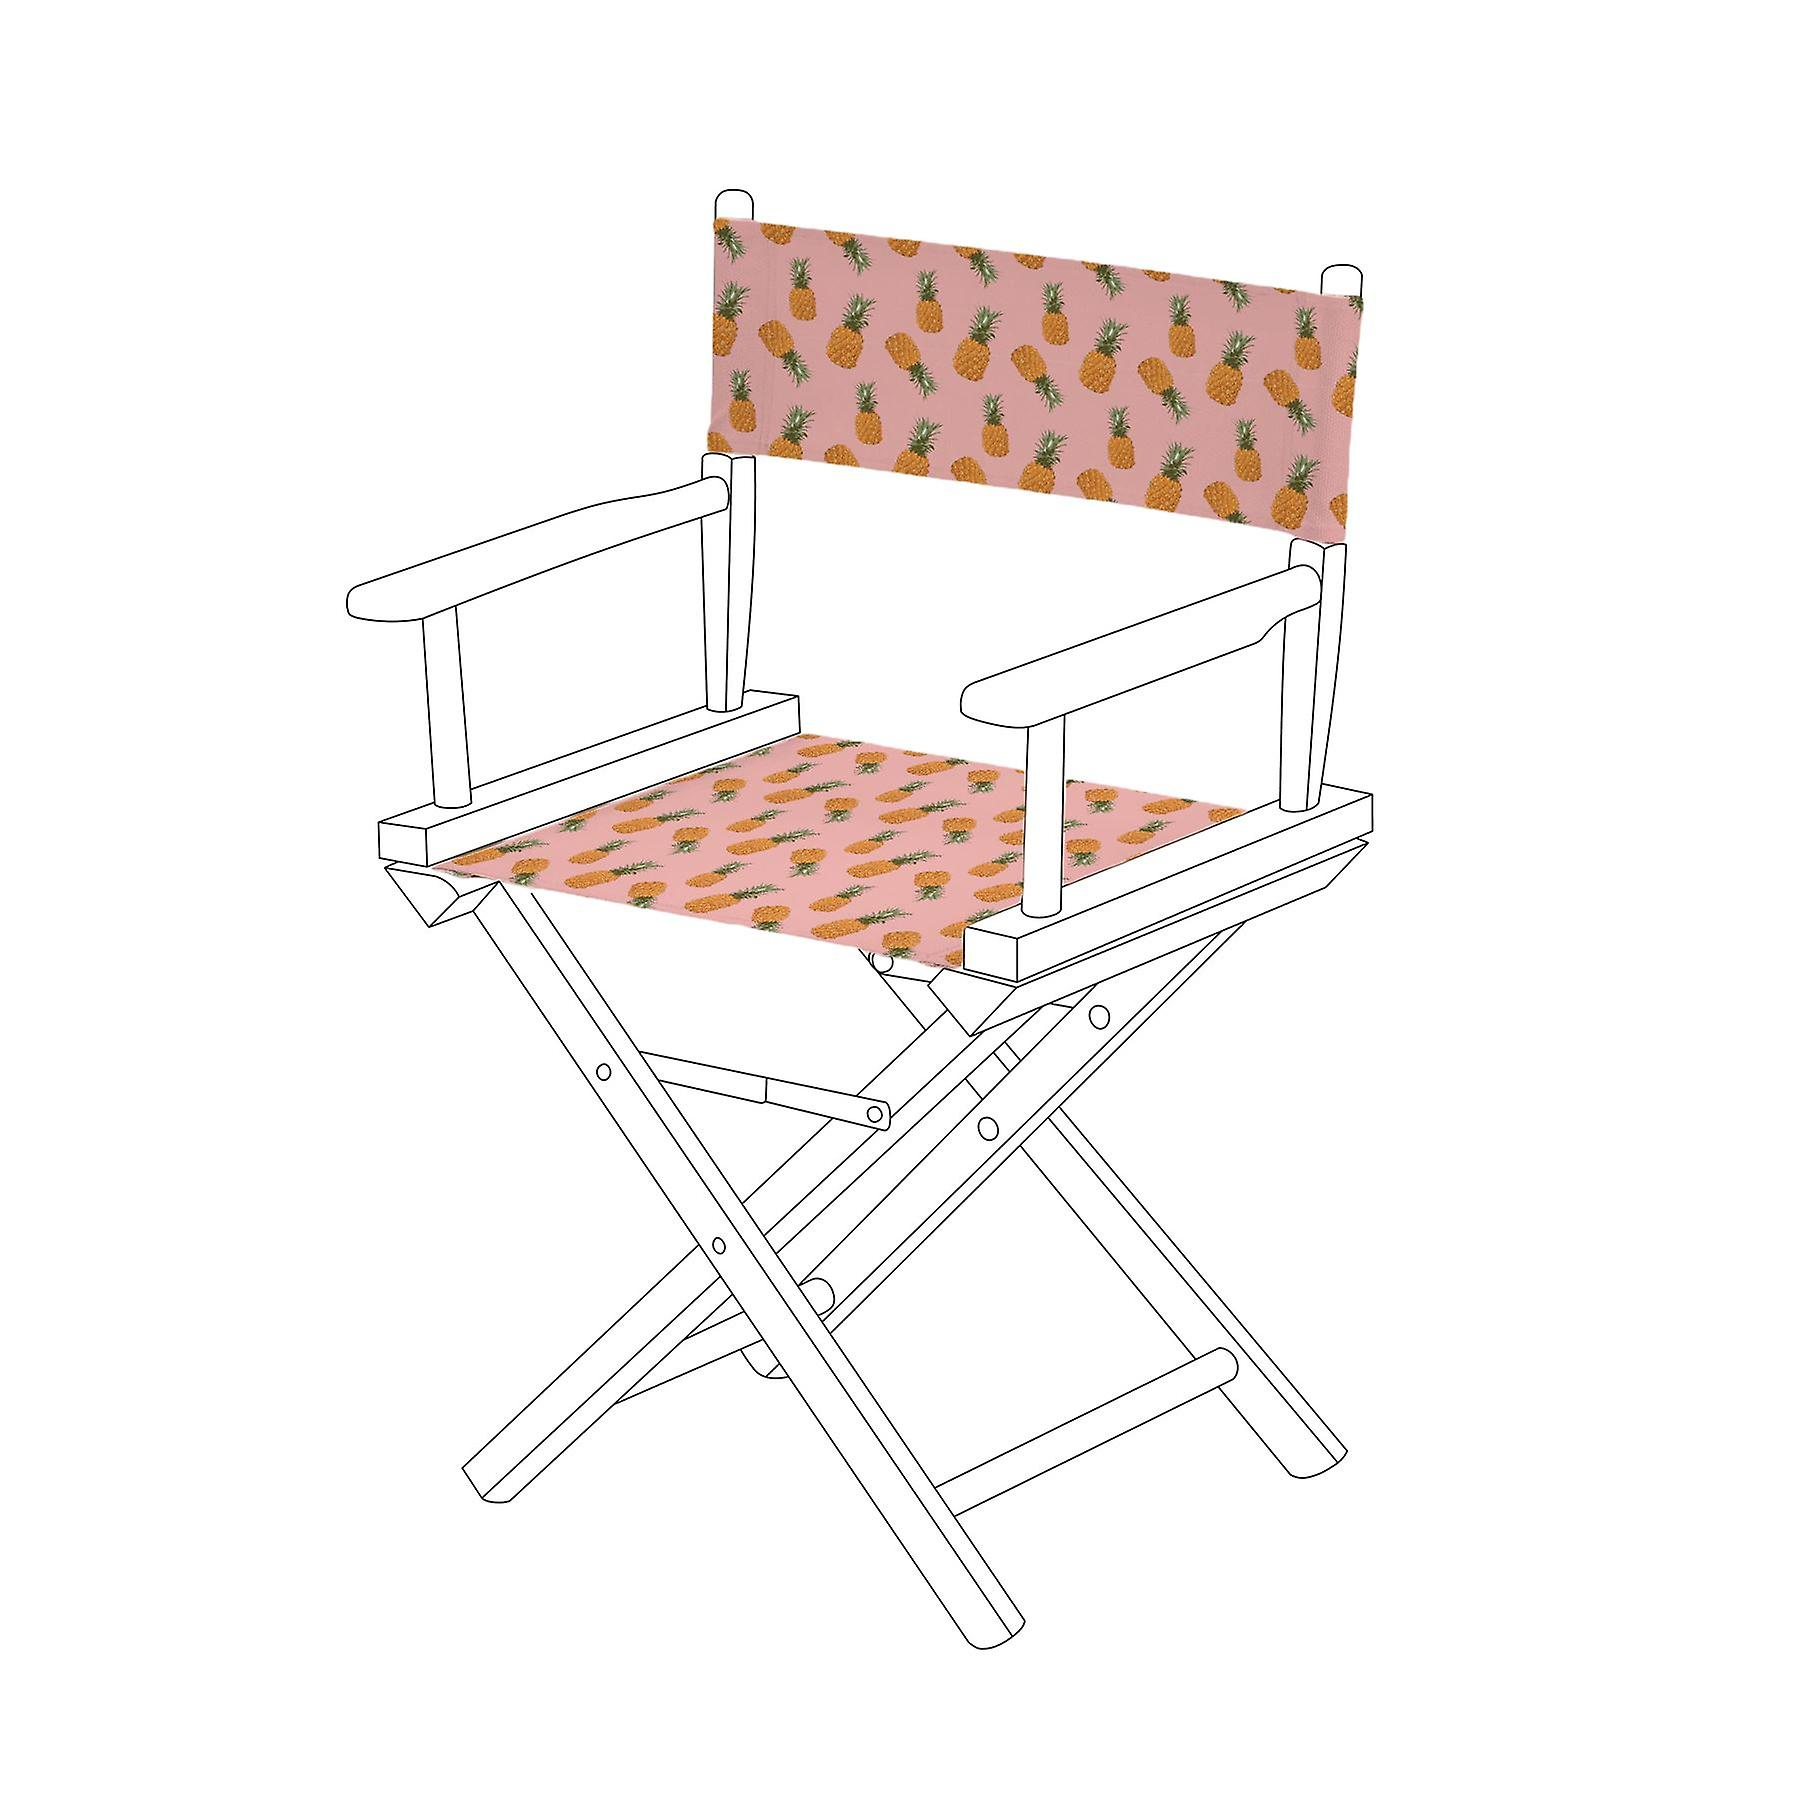 Chair Gardenista® Tropic Cover Replacement Design Directors Canvas Pineapples 3j4AL5Rq